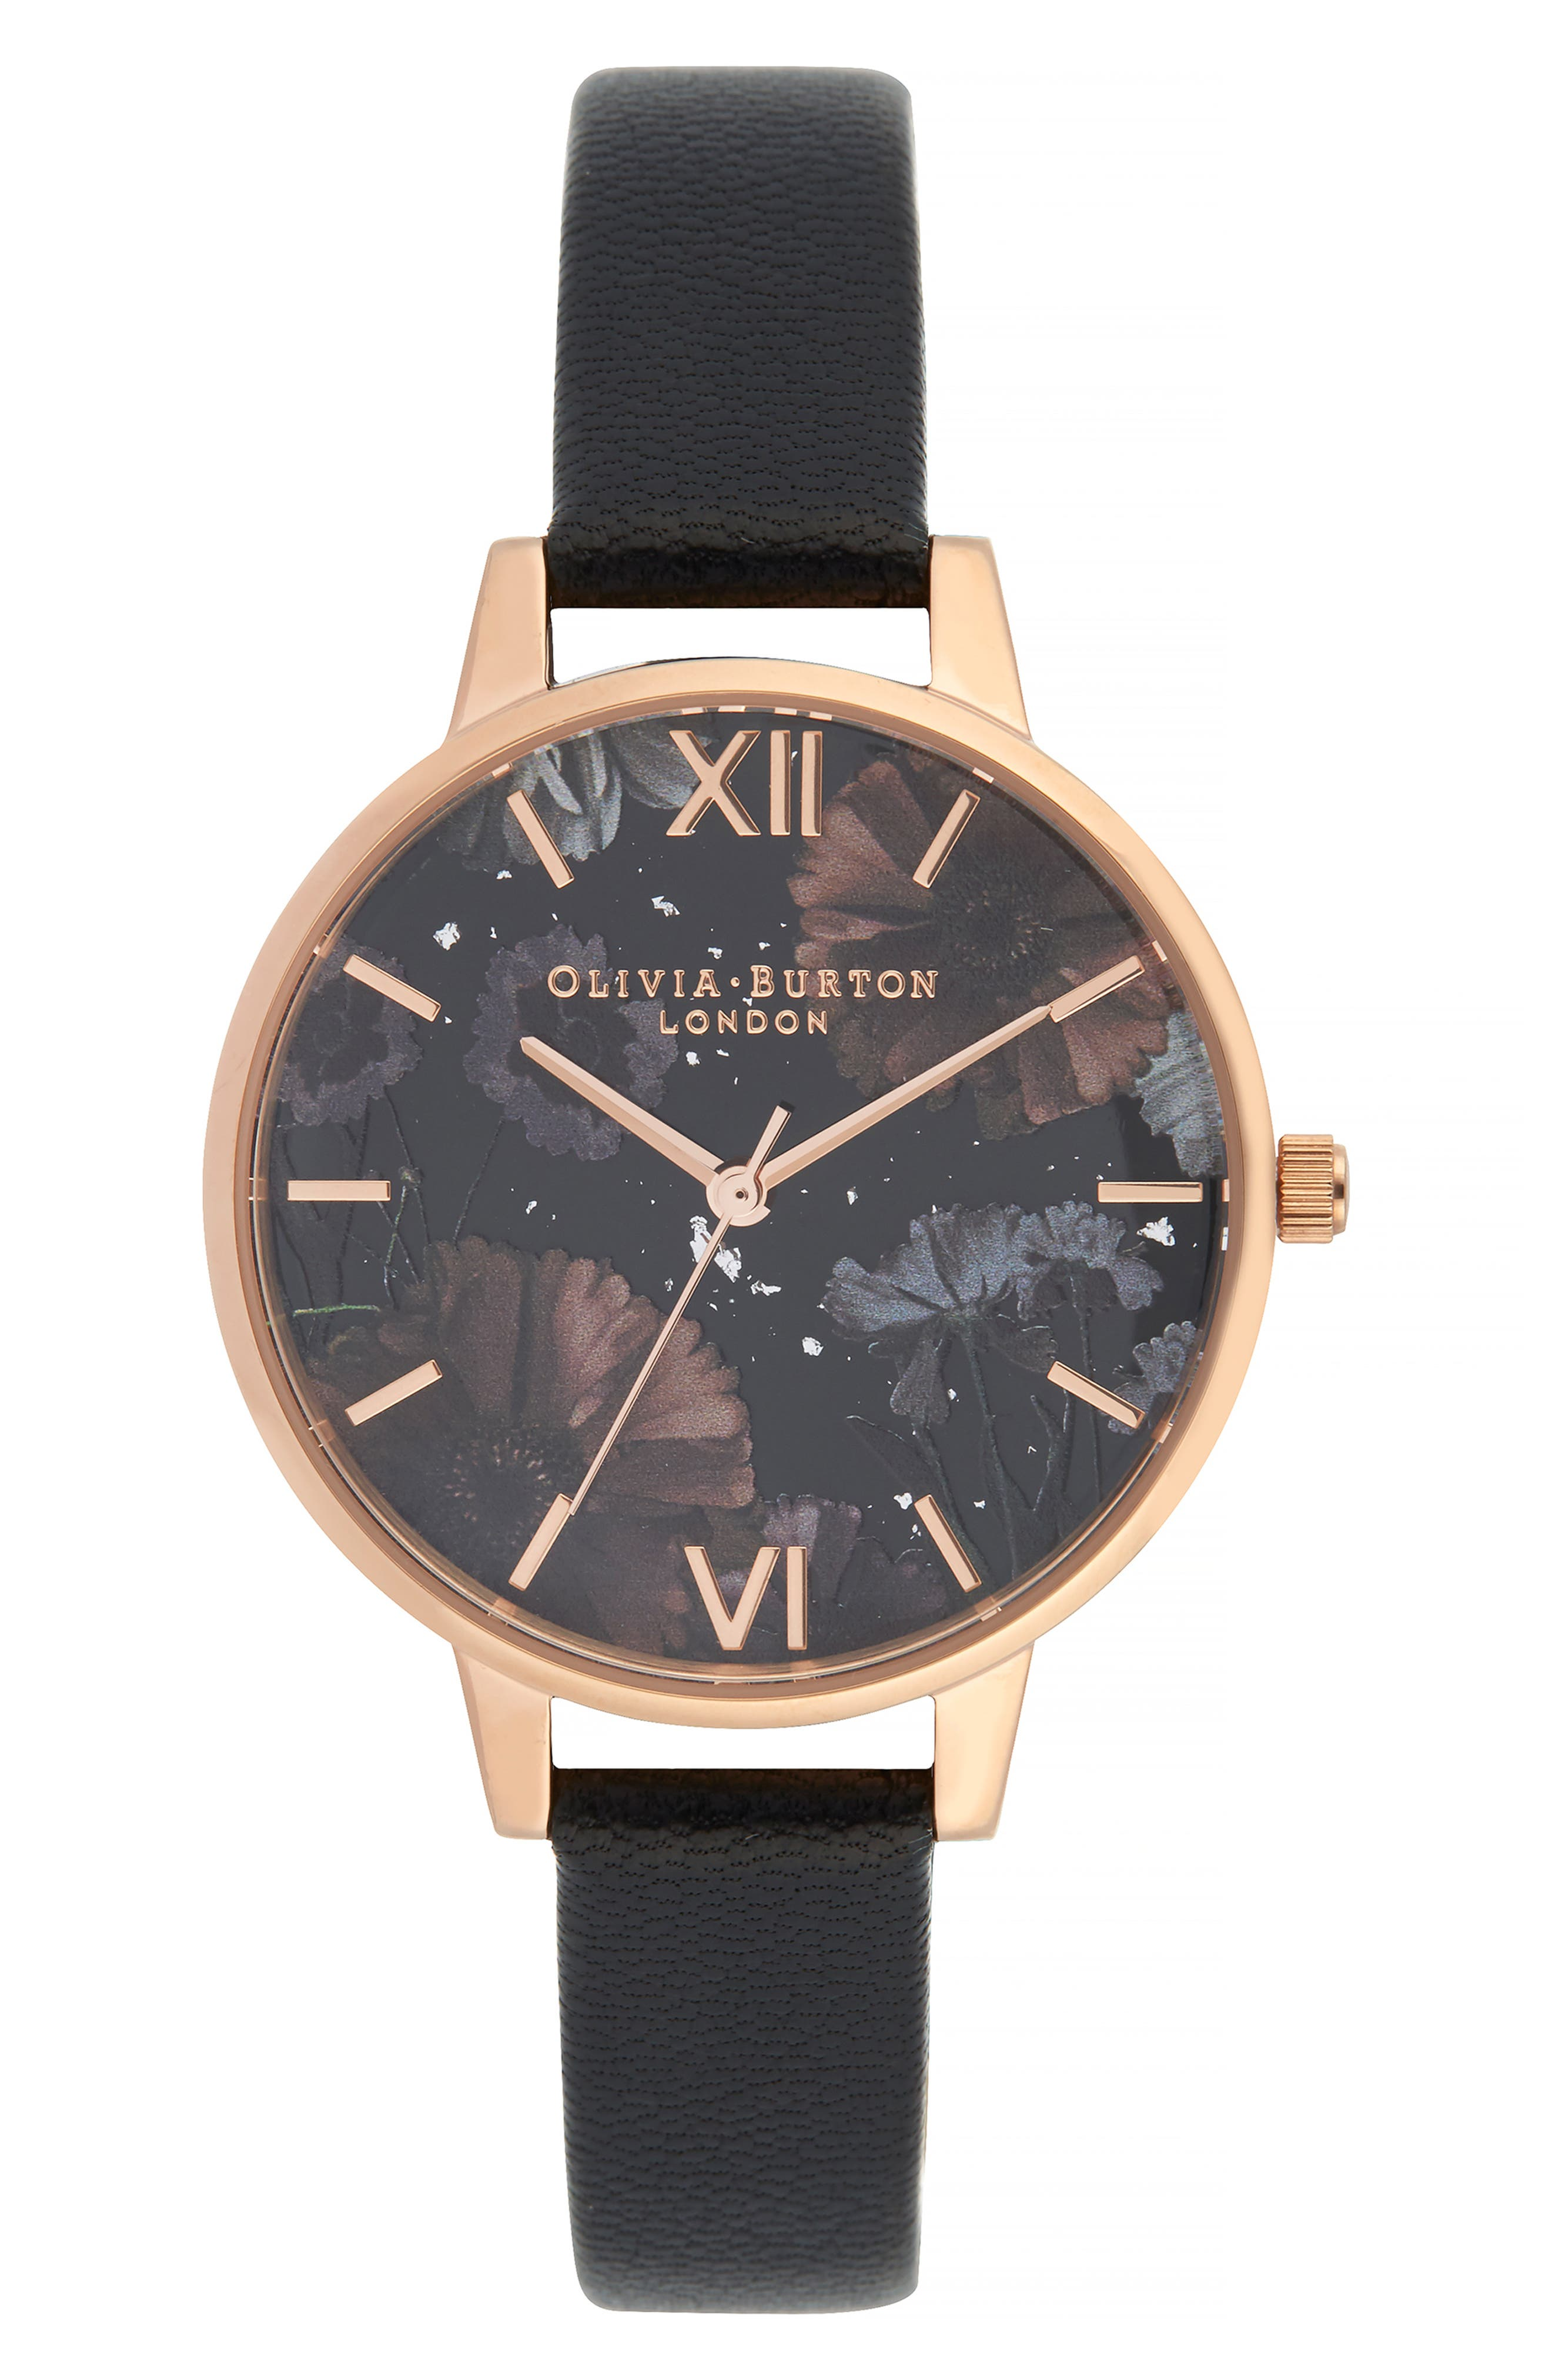 OLIVIA BURTON Celestial Leather Strap Watch, 34Mm in Black/ Floral/ Rose Gold